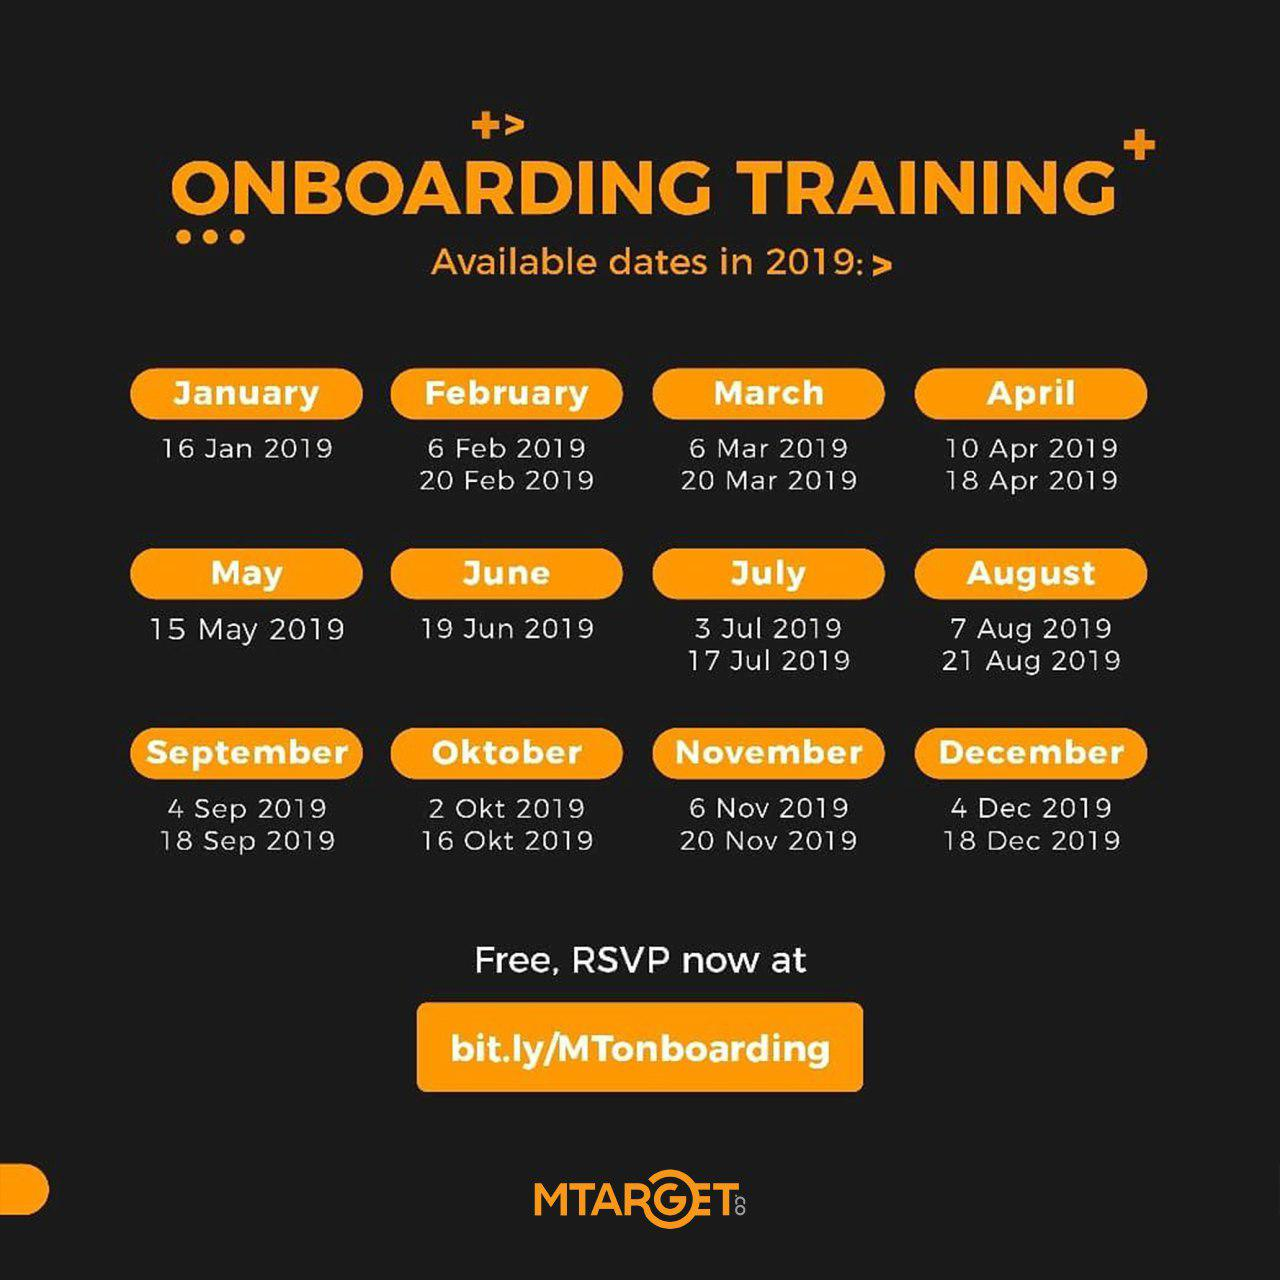 MTARGET Onboarding Training